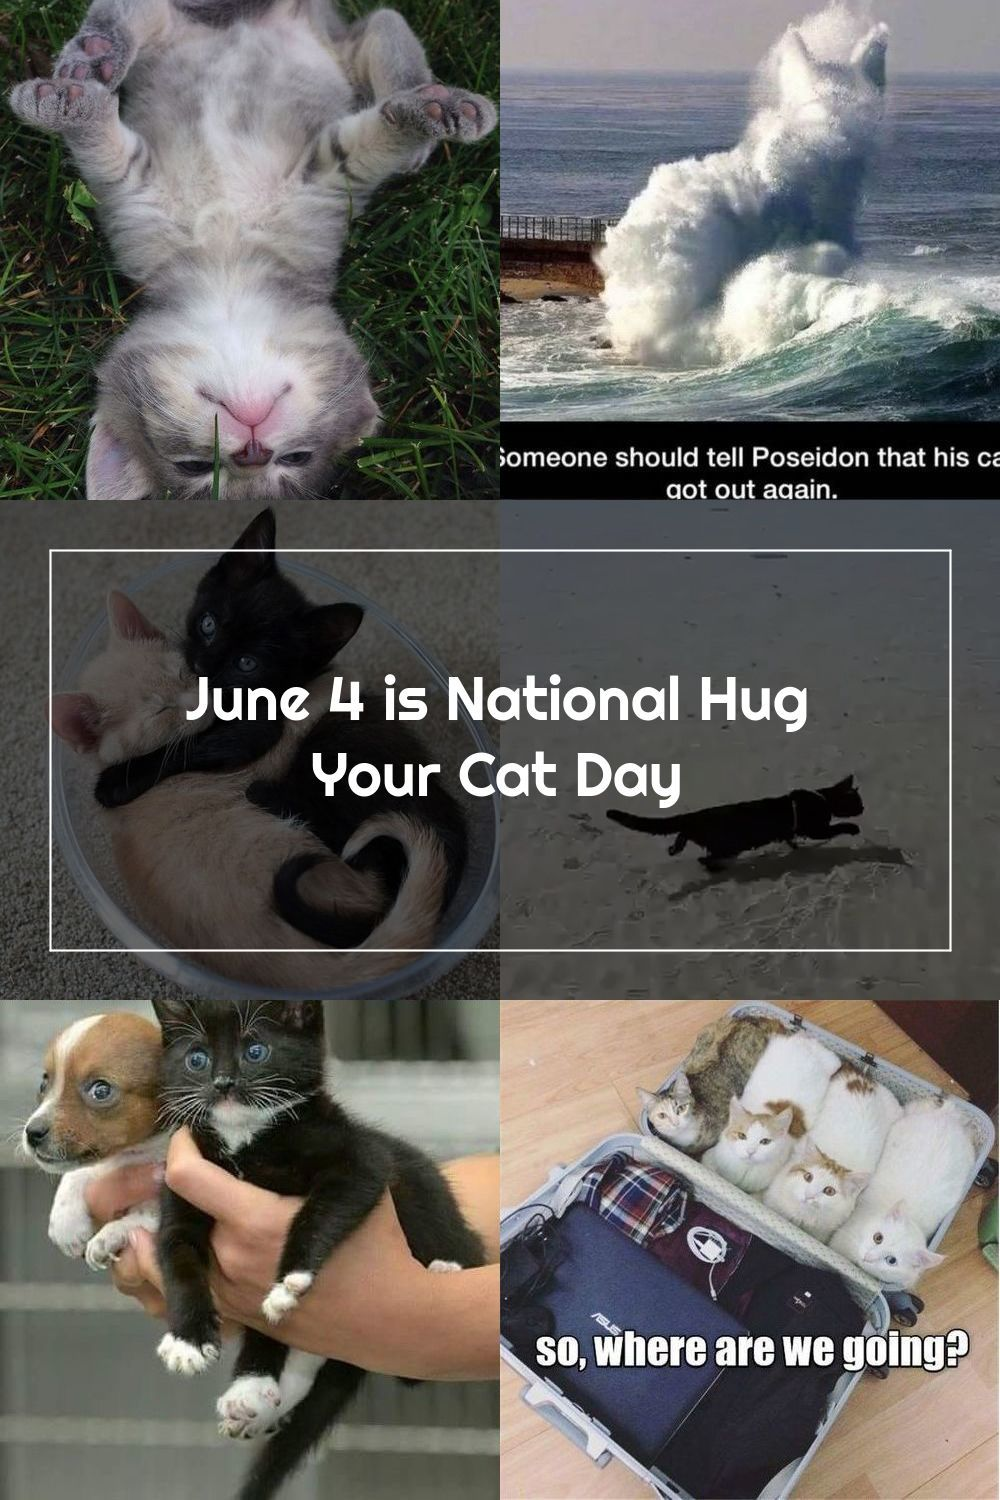 National Hug Your Cat Day is celebrated by giving your